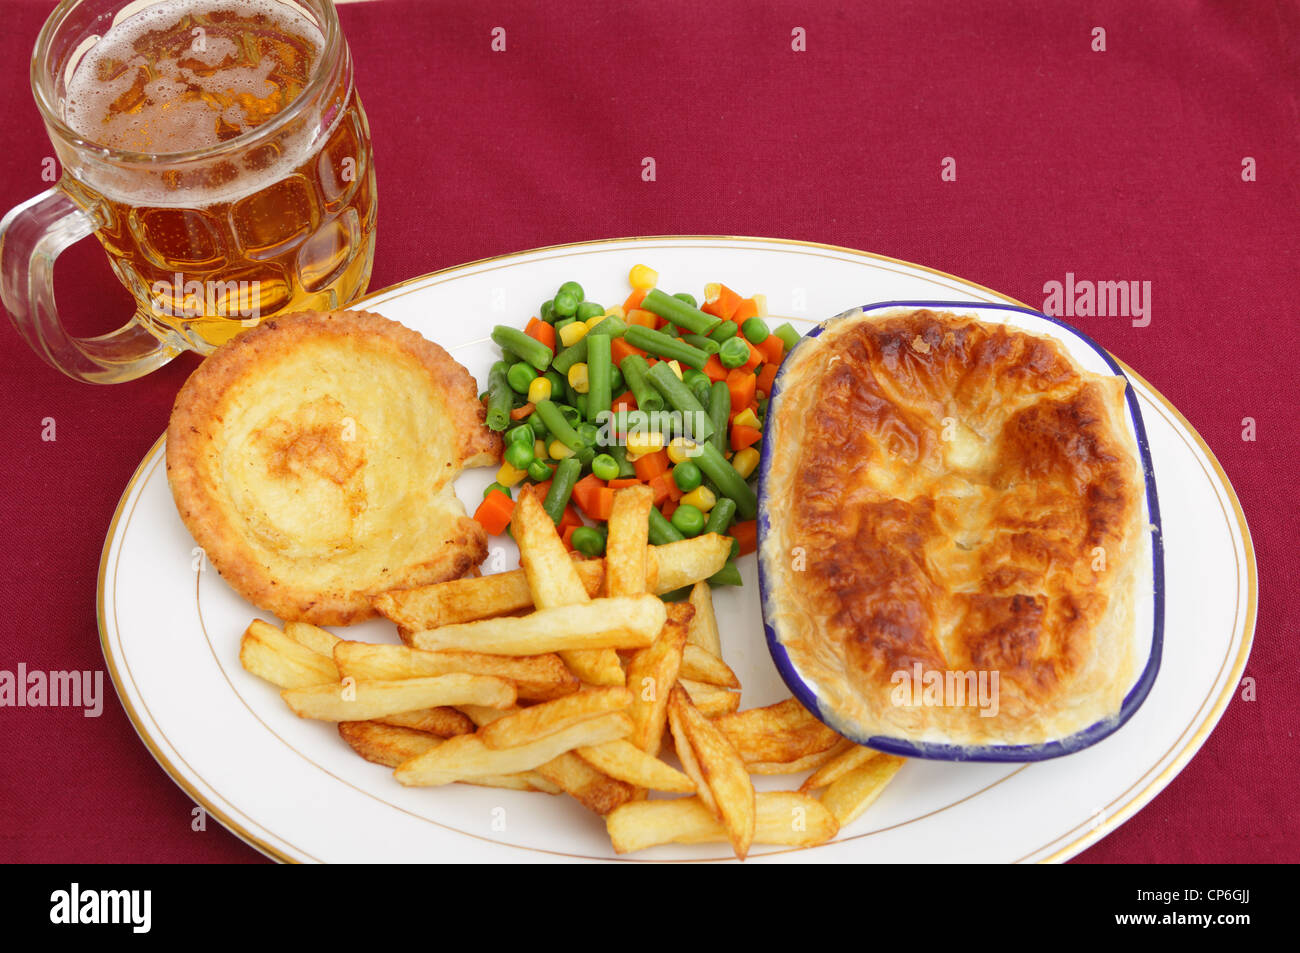 A pub grub style meal of a meat pie served with mixed veg, chips, Yorkshire pudding and a glass of lager. - Stock Image